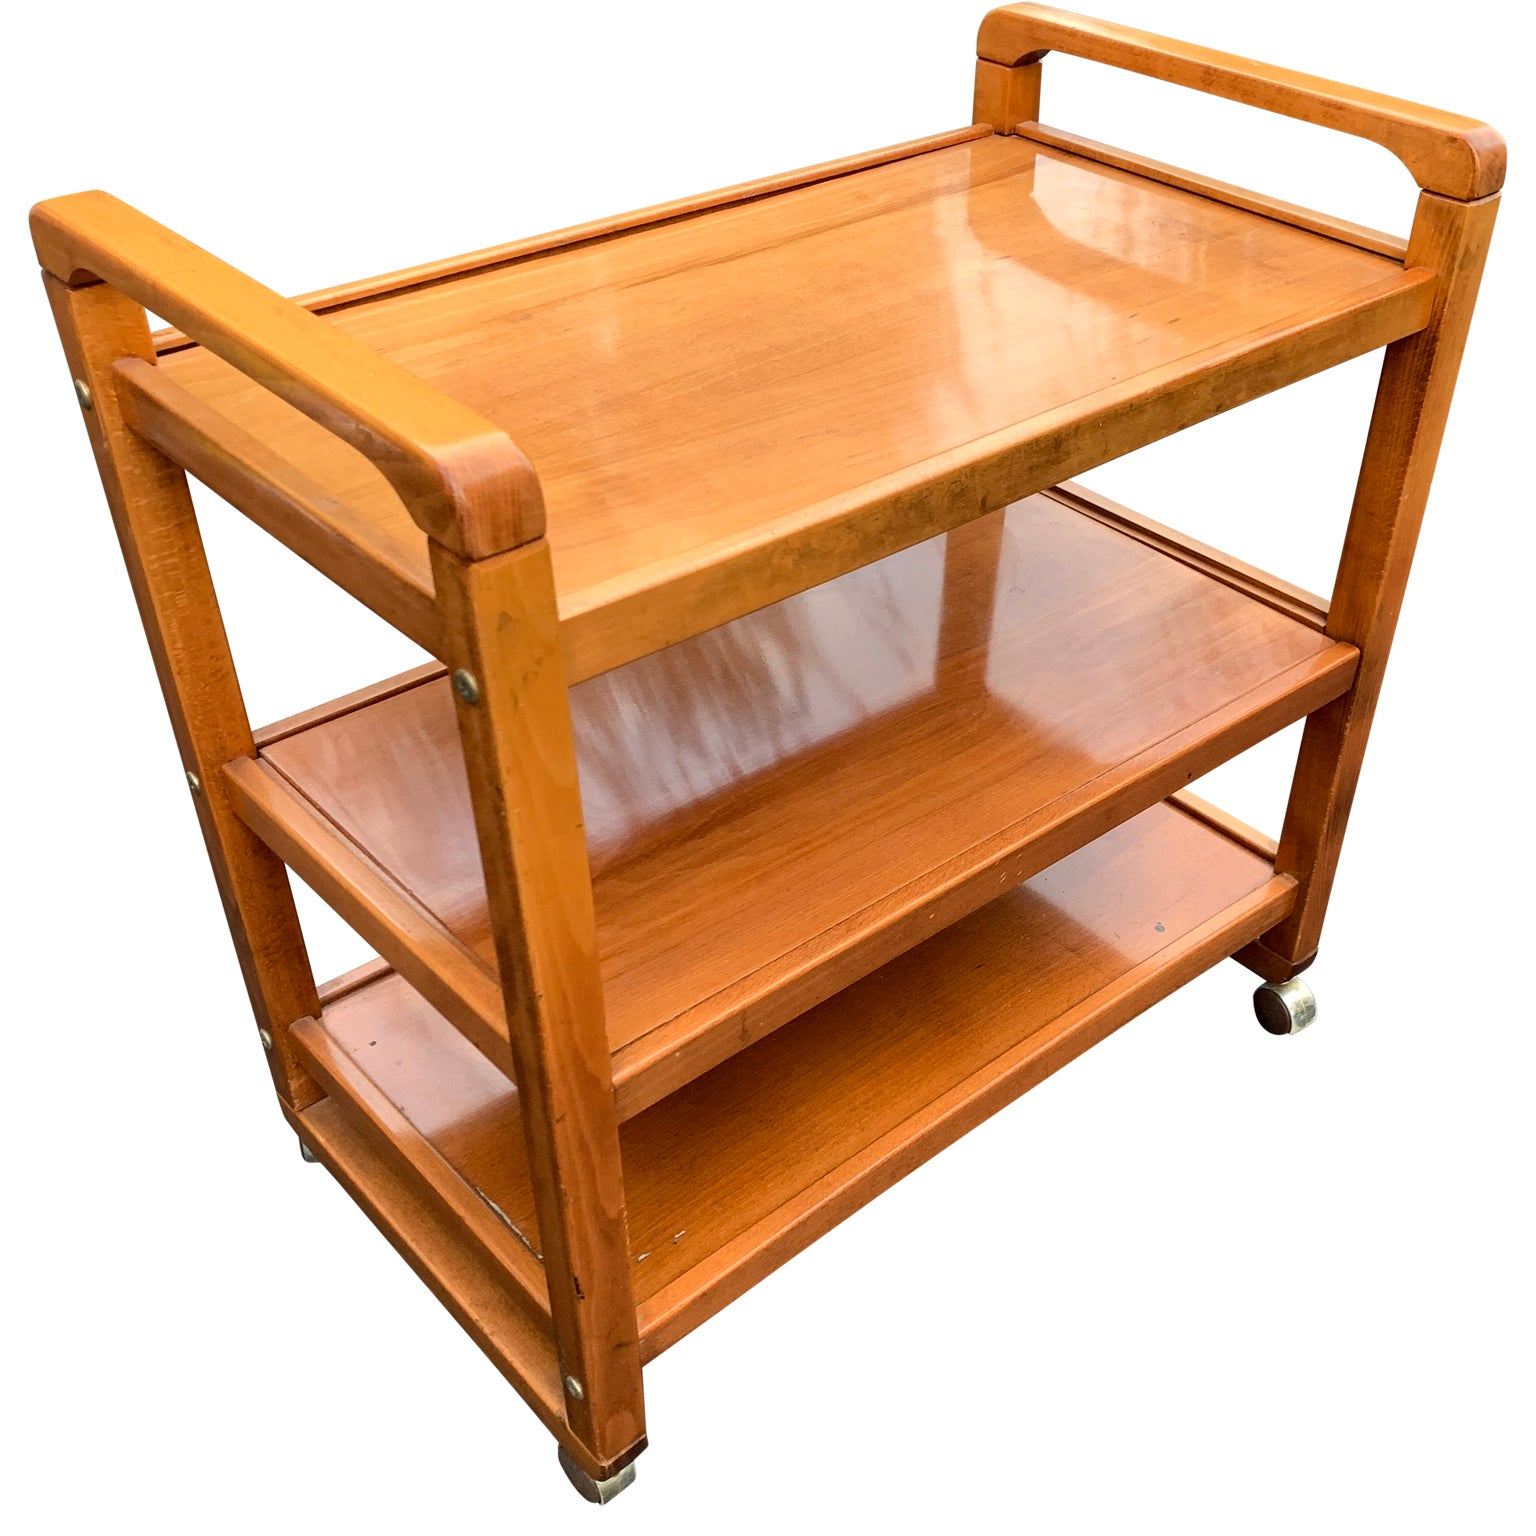 Danish mid century modern three tier birch wood bar cart for sale at 1stdibs